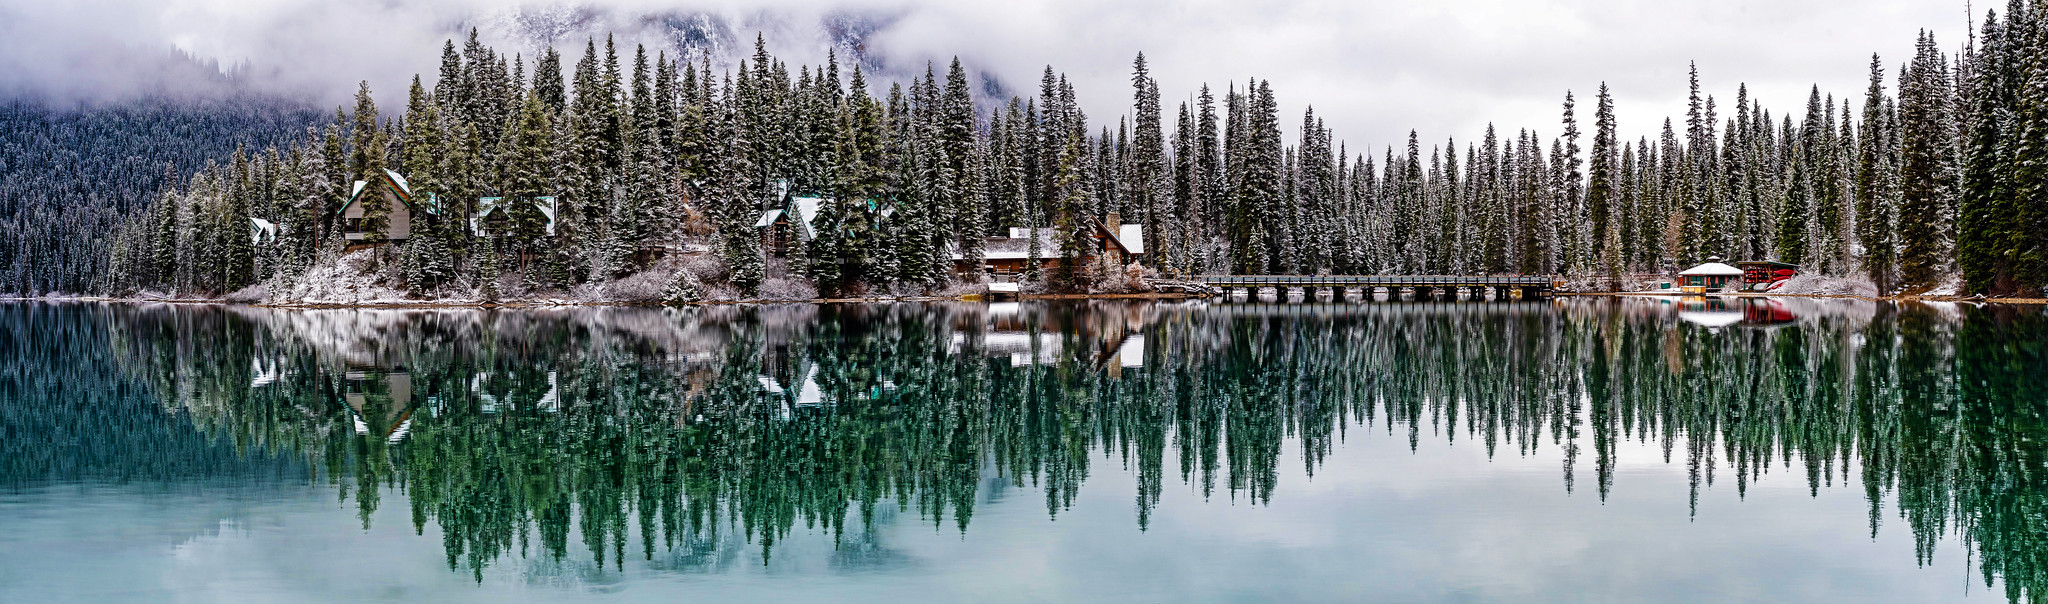 emerald lake late fall